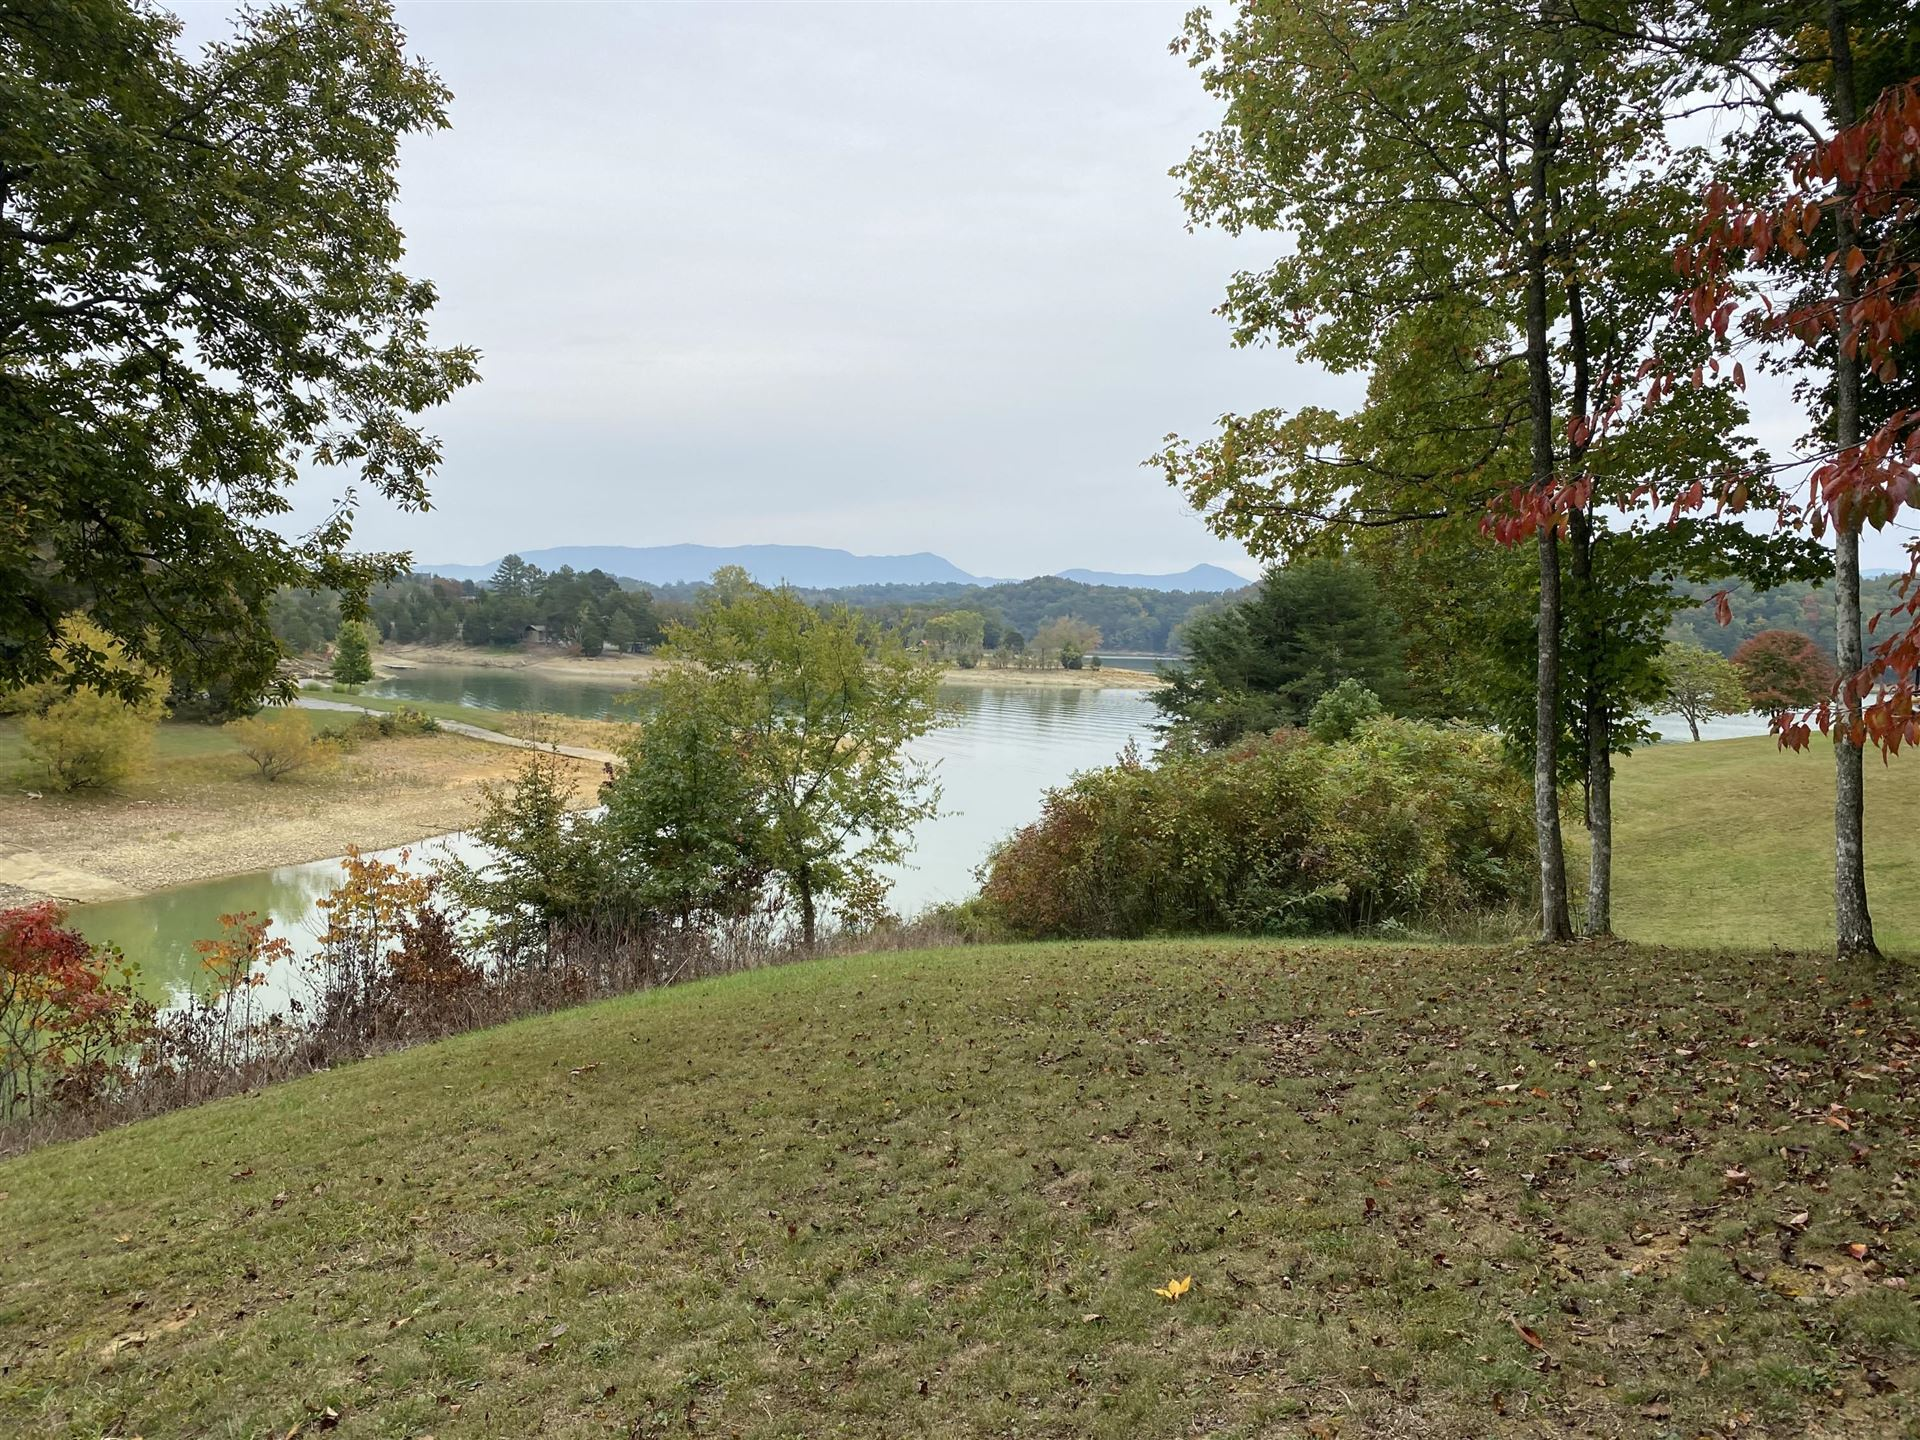 Photo for Kimsey Way, Sevierville, TN 37876 (MLS # 1132526)